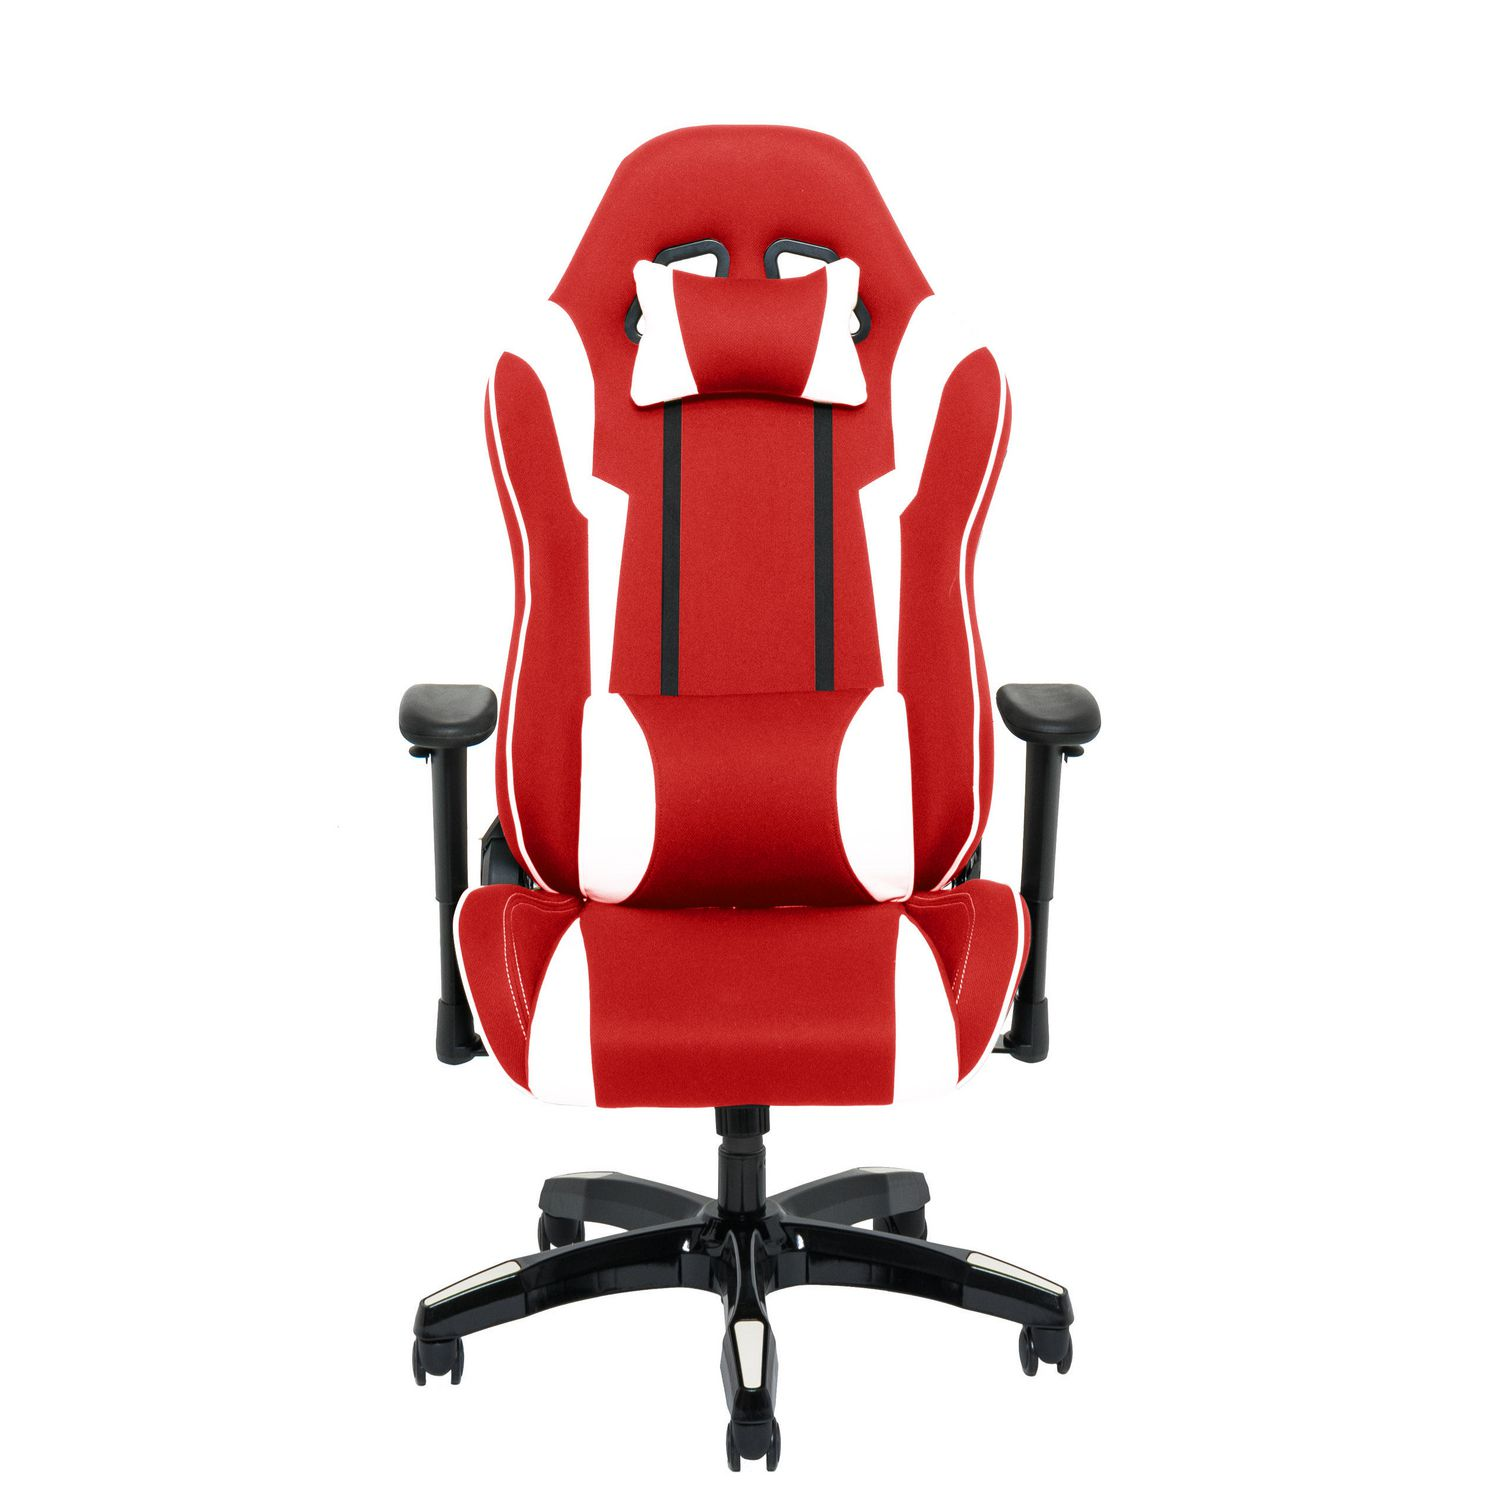 Corliving Red And White High Back Ergonomic Gaming Chair Walmart